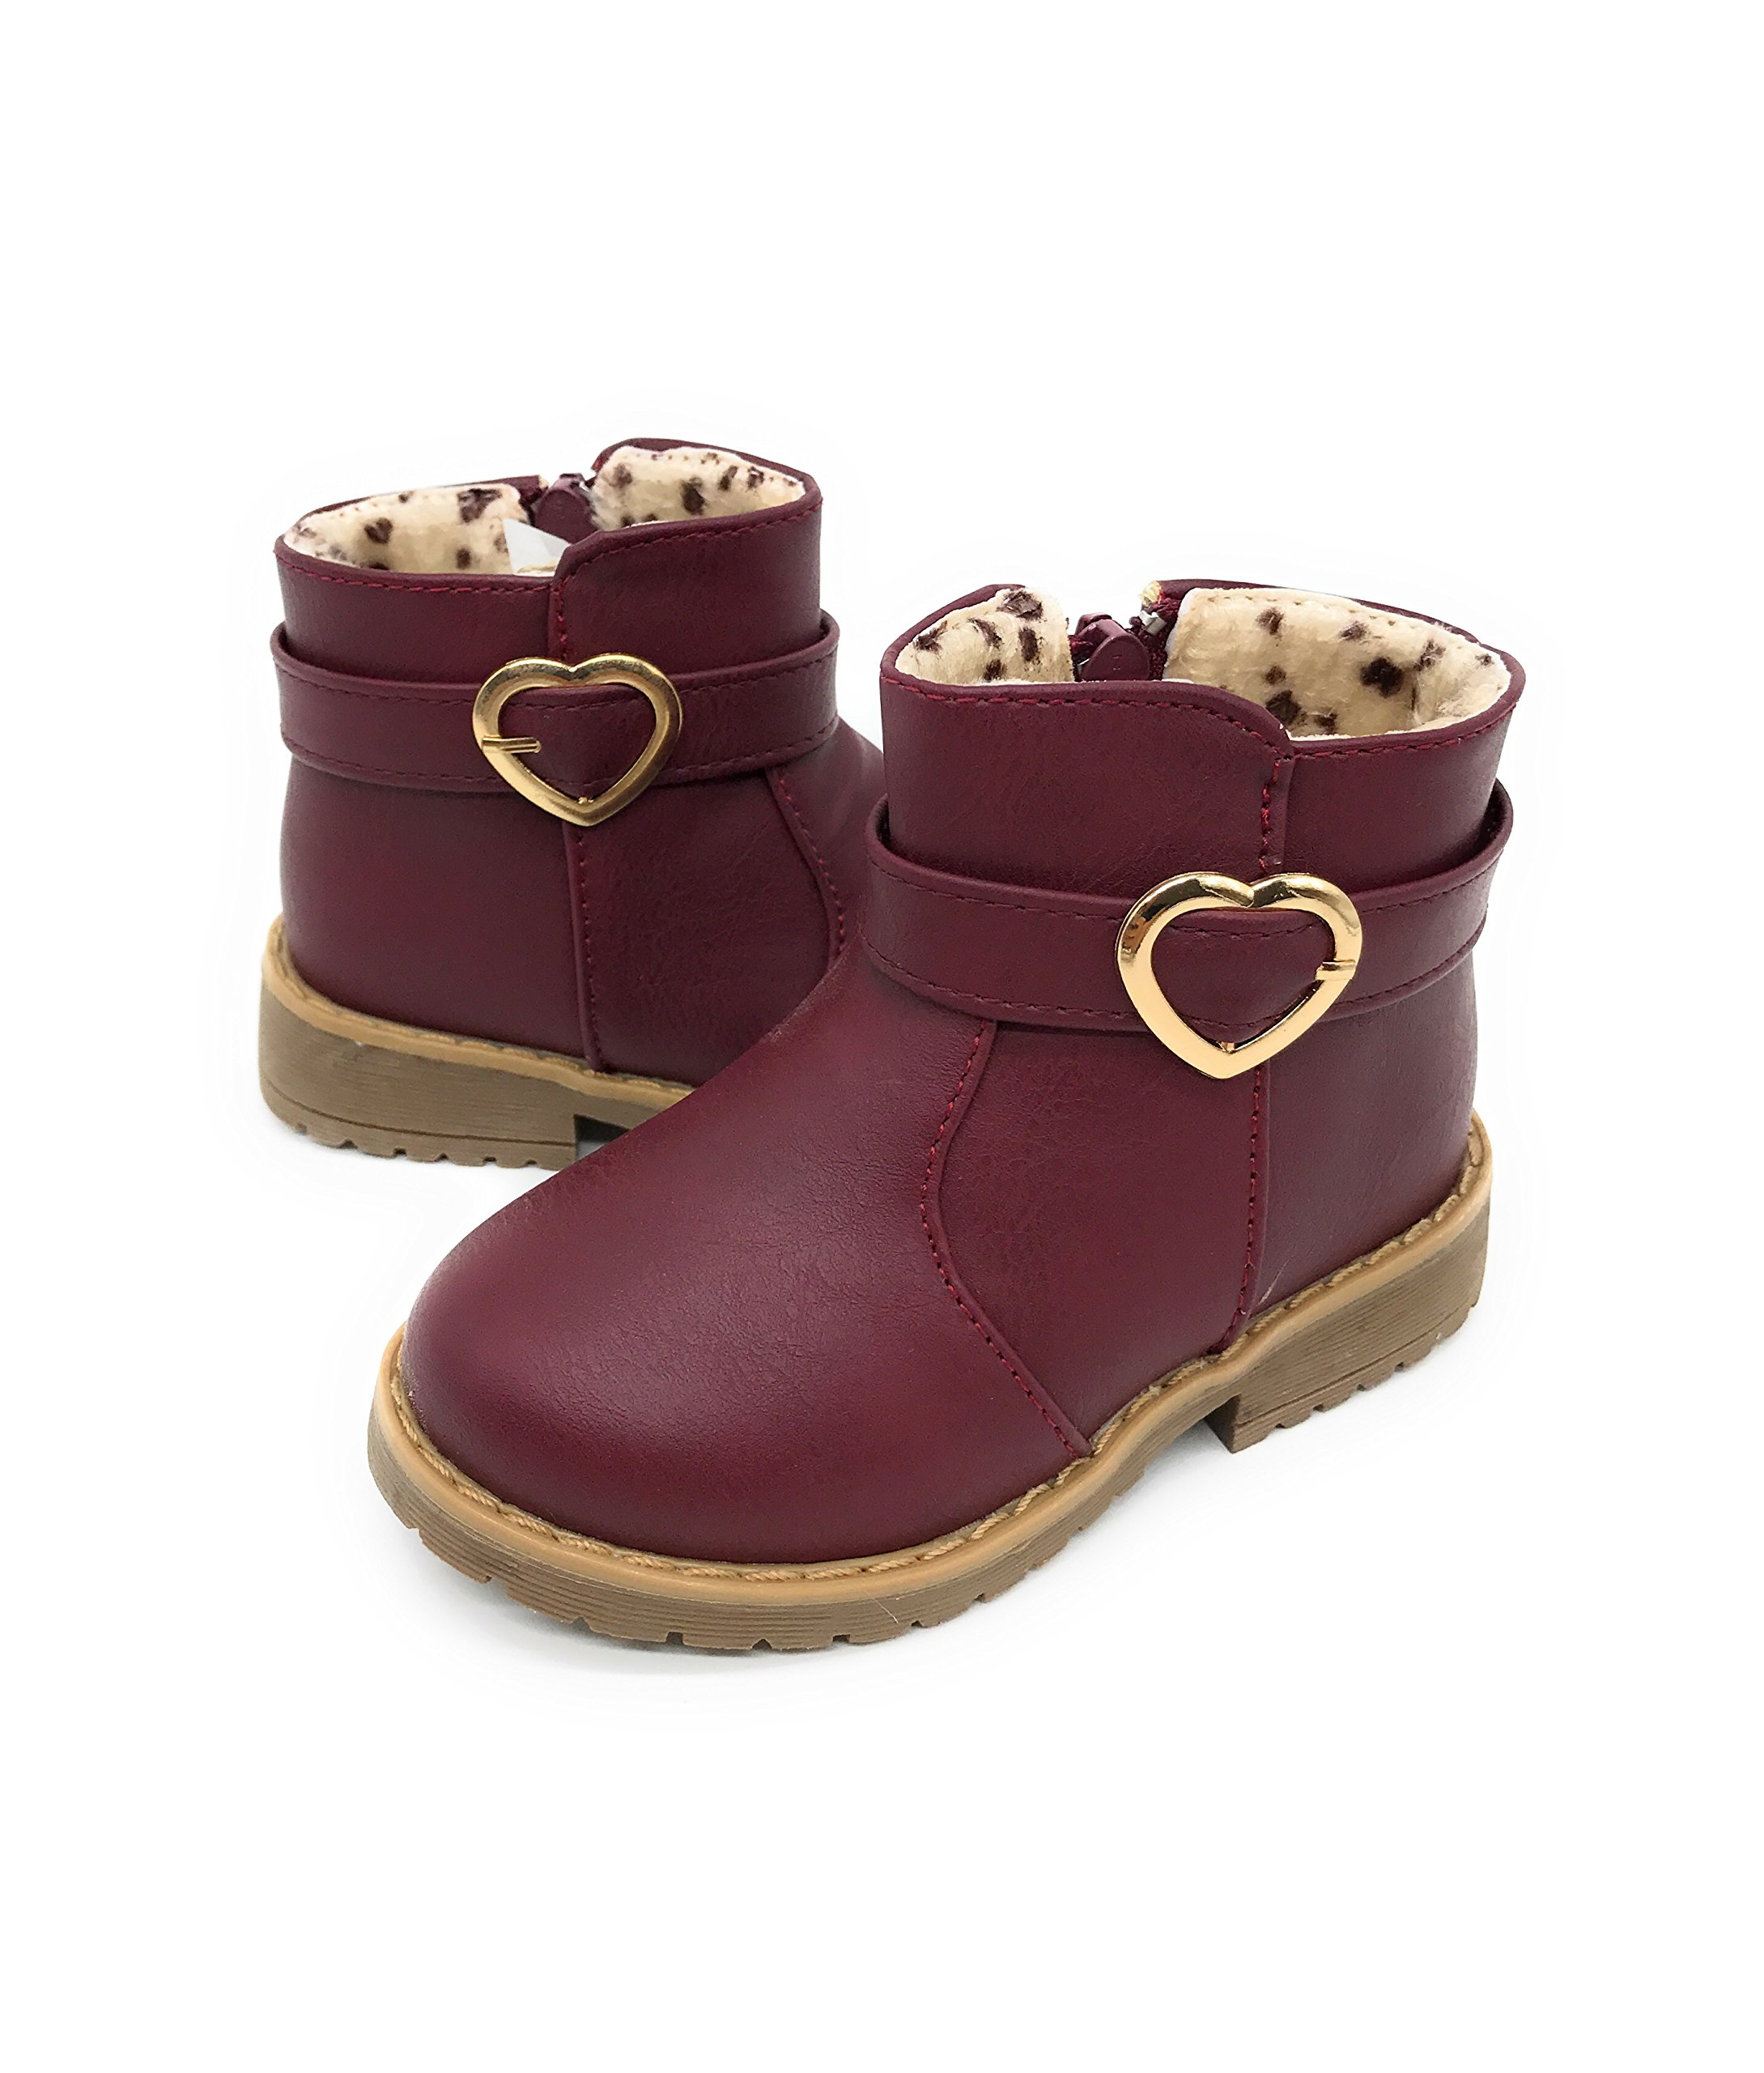 Blue Berry EASY21 Girls Zip Mid Calf Motorcycle Toddler/Infant Winter Boots,Burgundy 17,Size 5